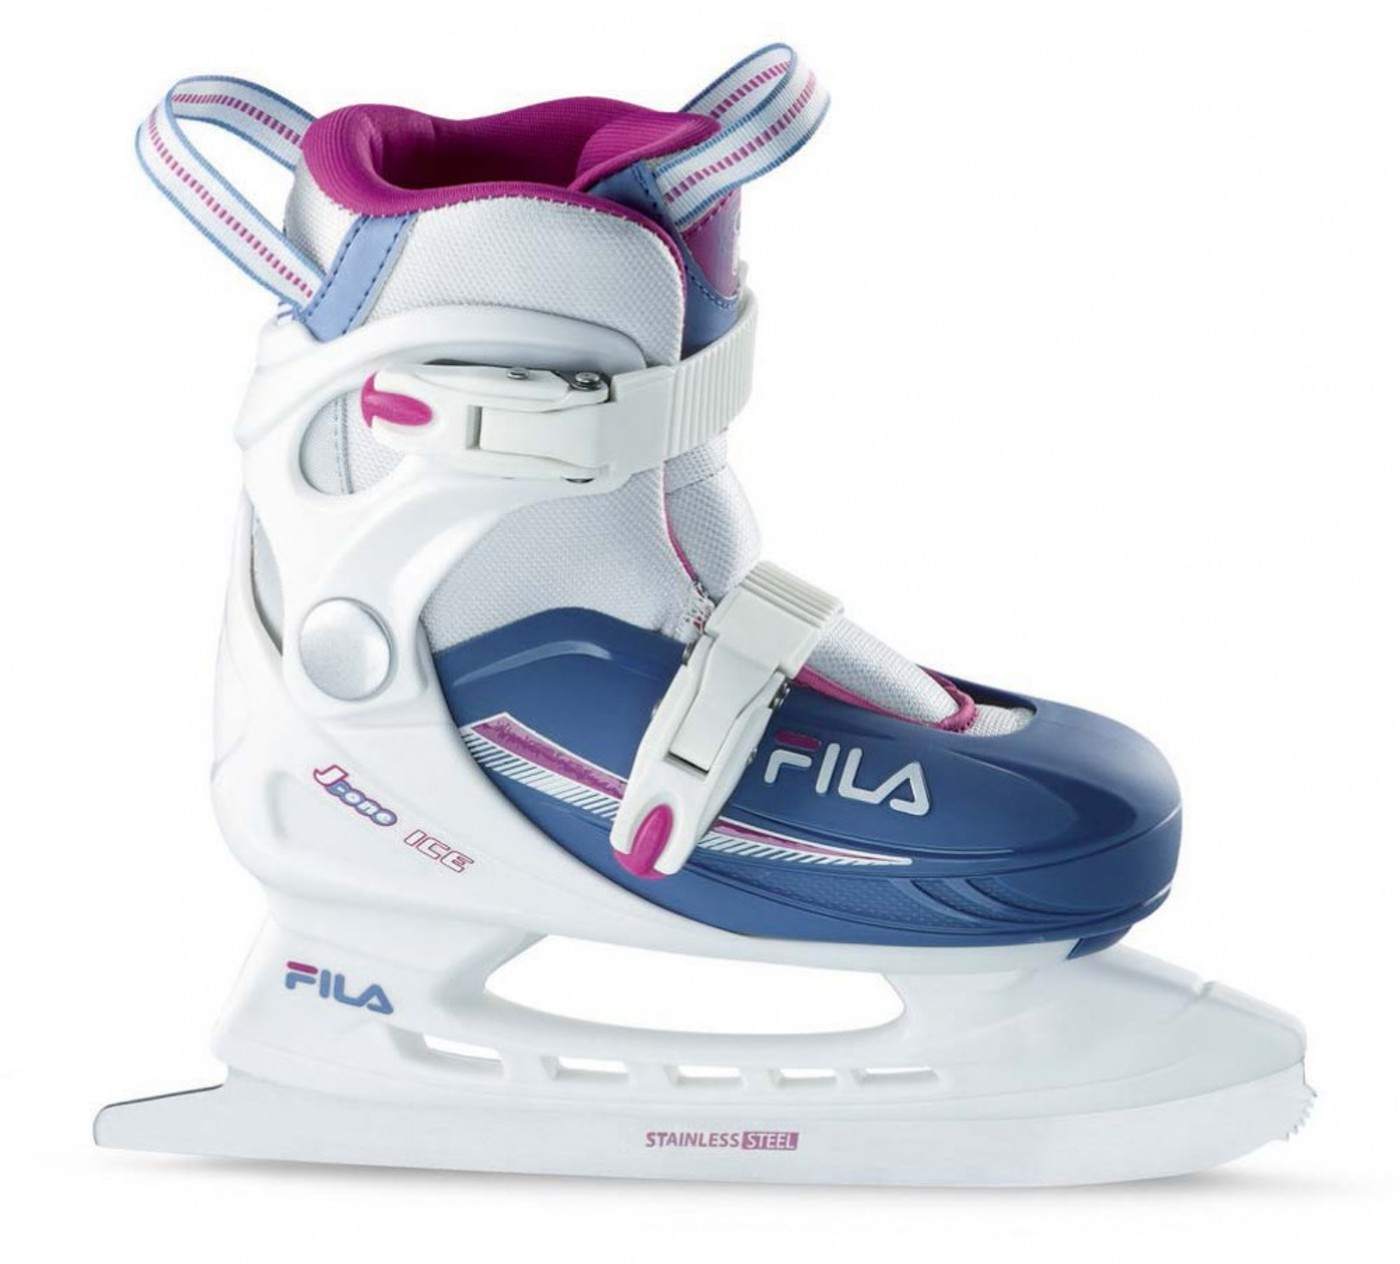 FILA J-One G Ice HR - Kinder